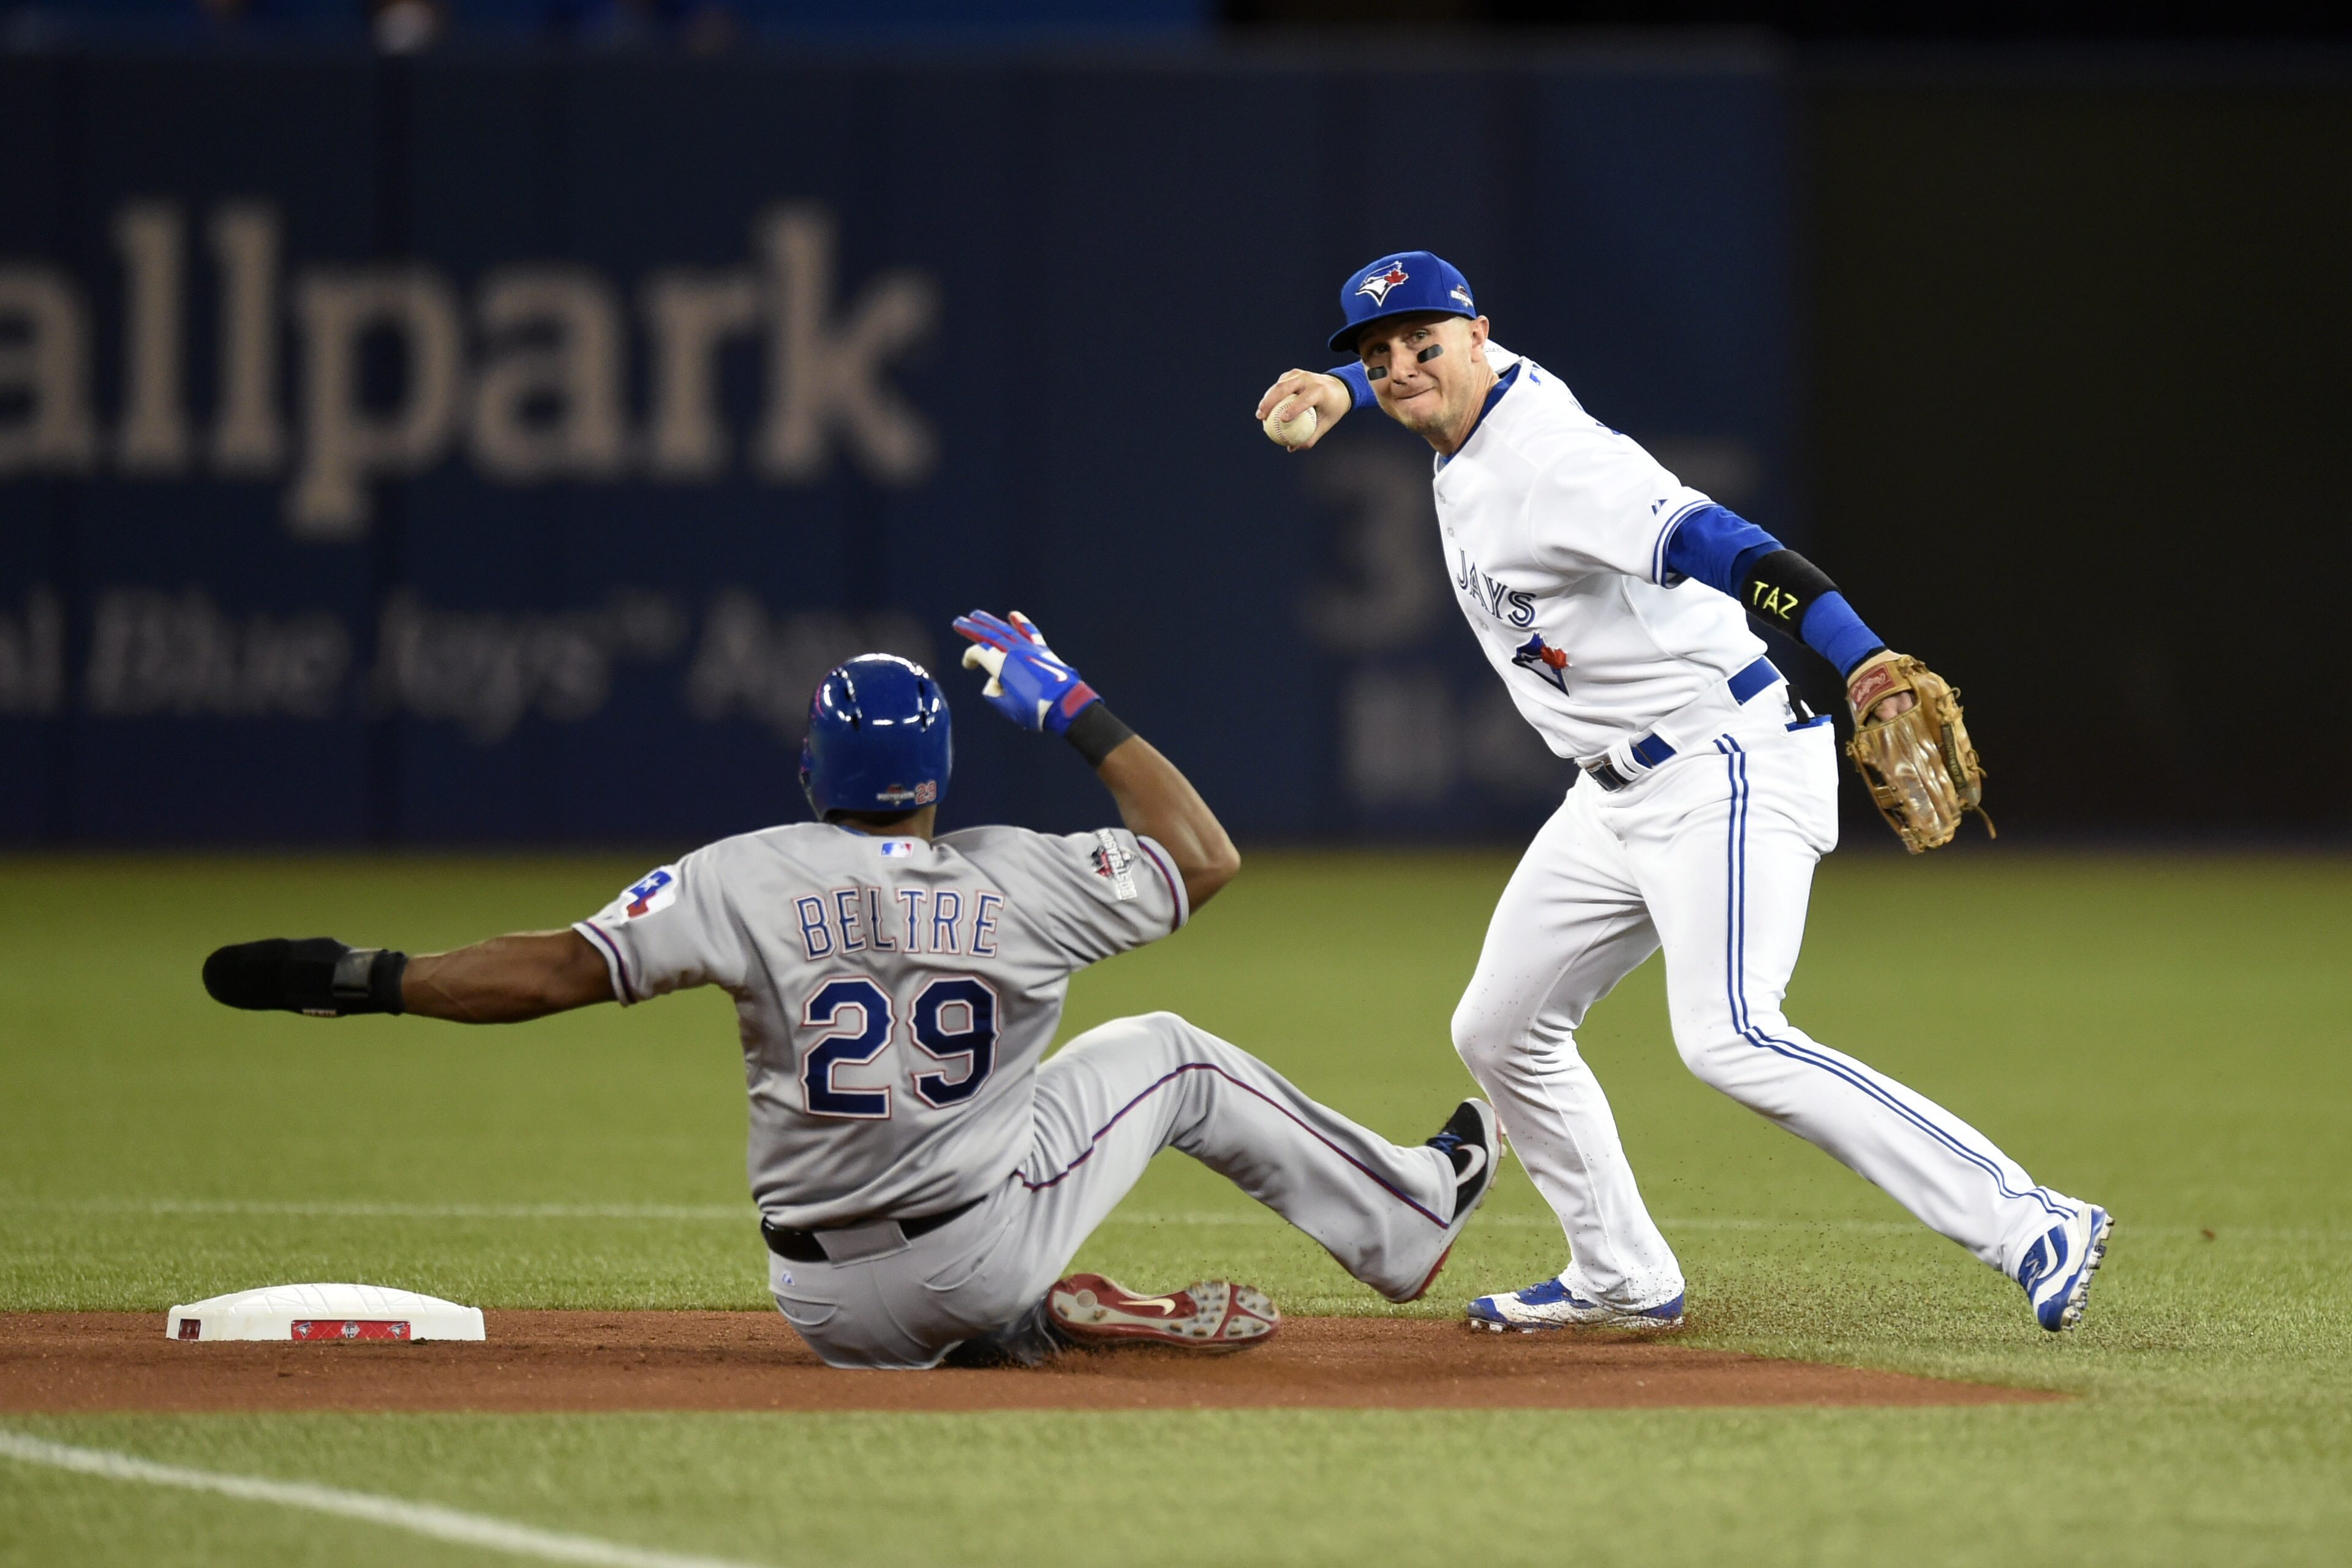 Toronto Blue Jays' shortstop Troy Tulowitzki forces out Texas Rangers' Adrian Beltre at second base before throwing to first base for the double play during the first inning in Game 1 of an American League Division Series in Toronto on Thursday, Oct. 8, 2